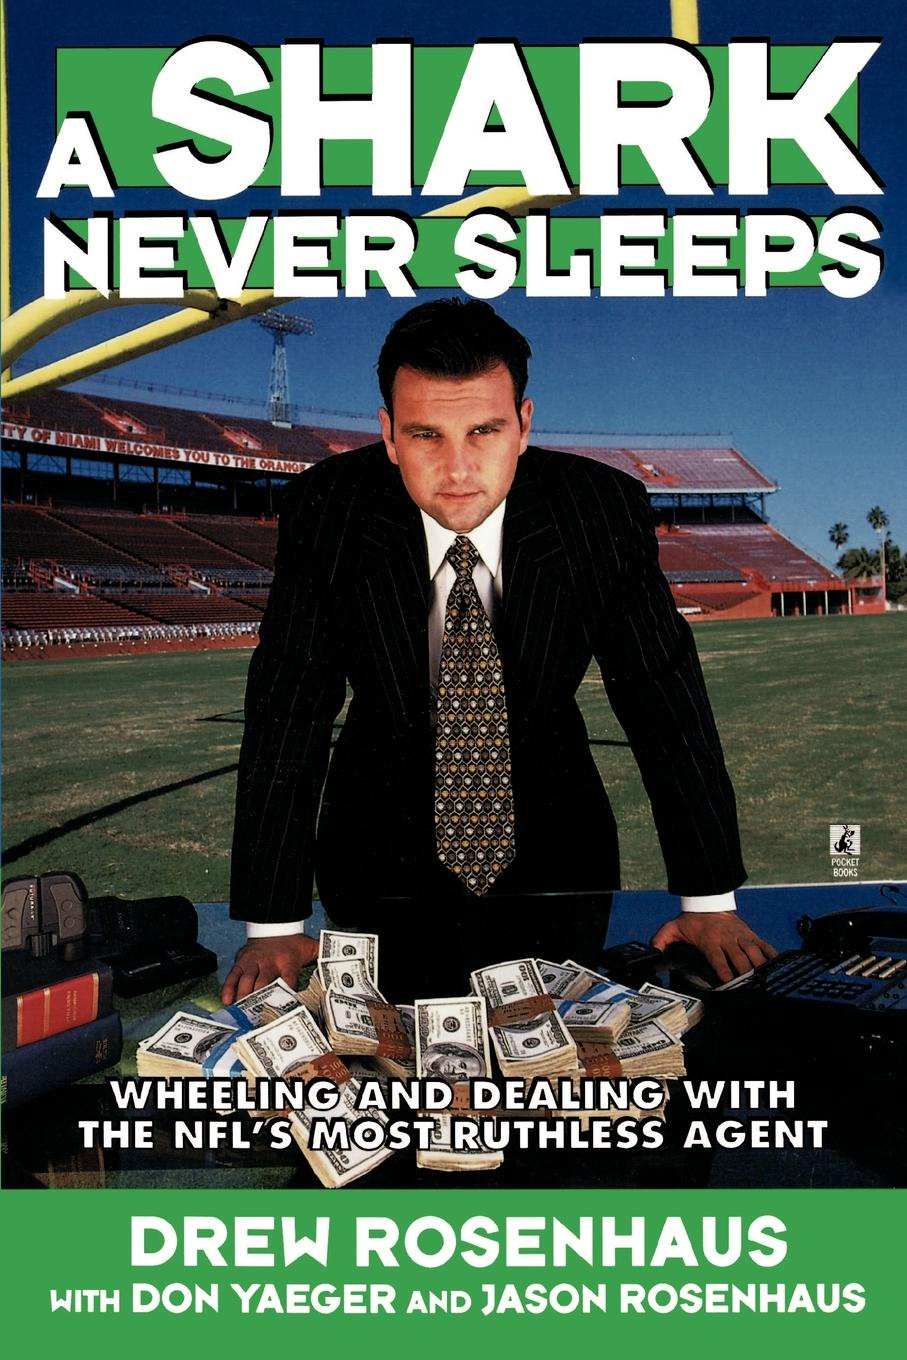 Drew Rosenhaus A Shark Never Sleeps. Wheeling and Dealing with the NFL's Most Ruthless Agent